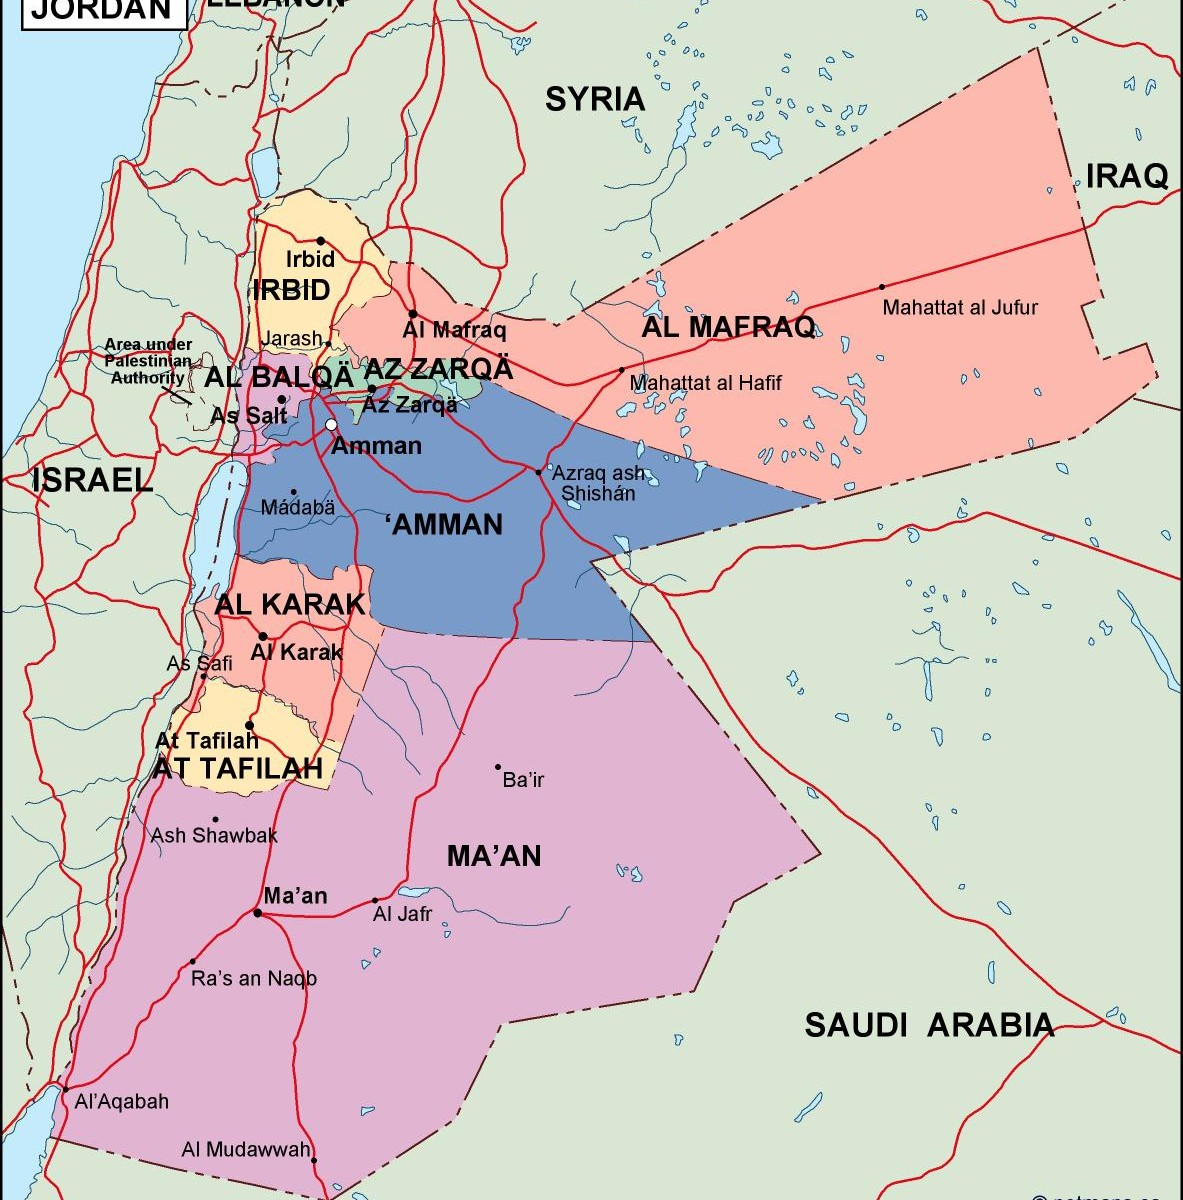 Jordan Political Map.Jordan Political Map Order And Download Jordan Political Map